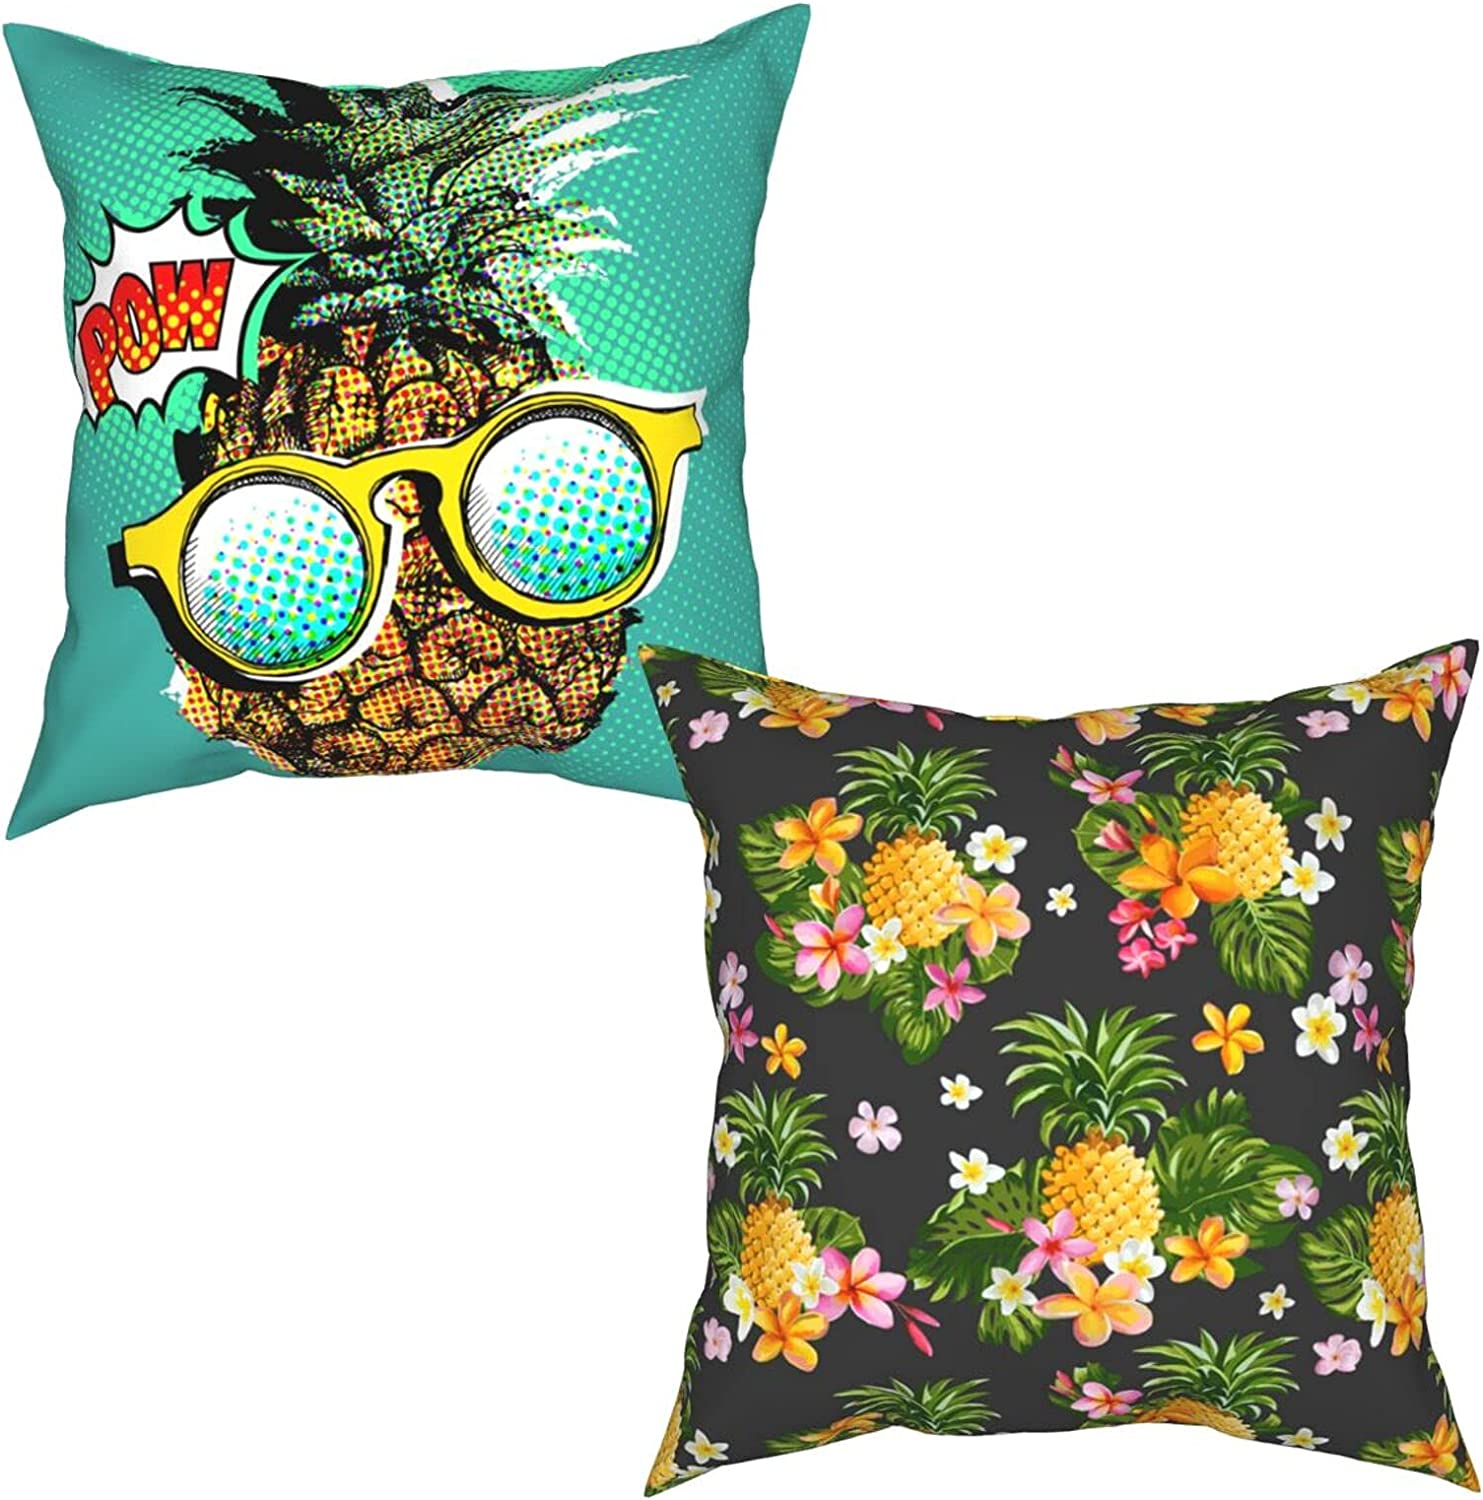 Pineapple with Sunglasses Max 80% OFF Green Pillow Outdoor 70% OFF Outlet Covers Pill Throw